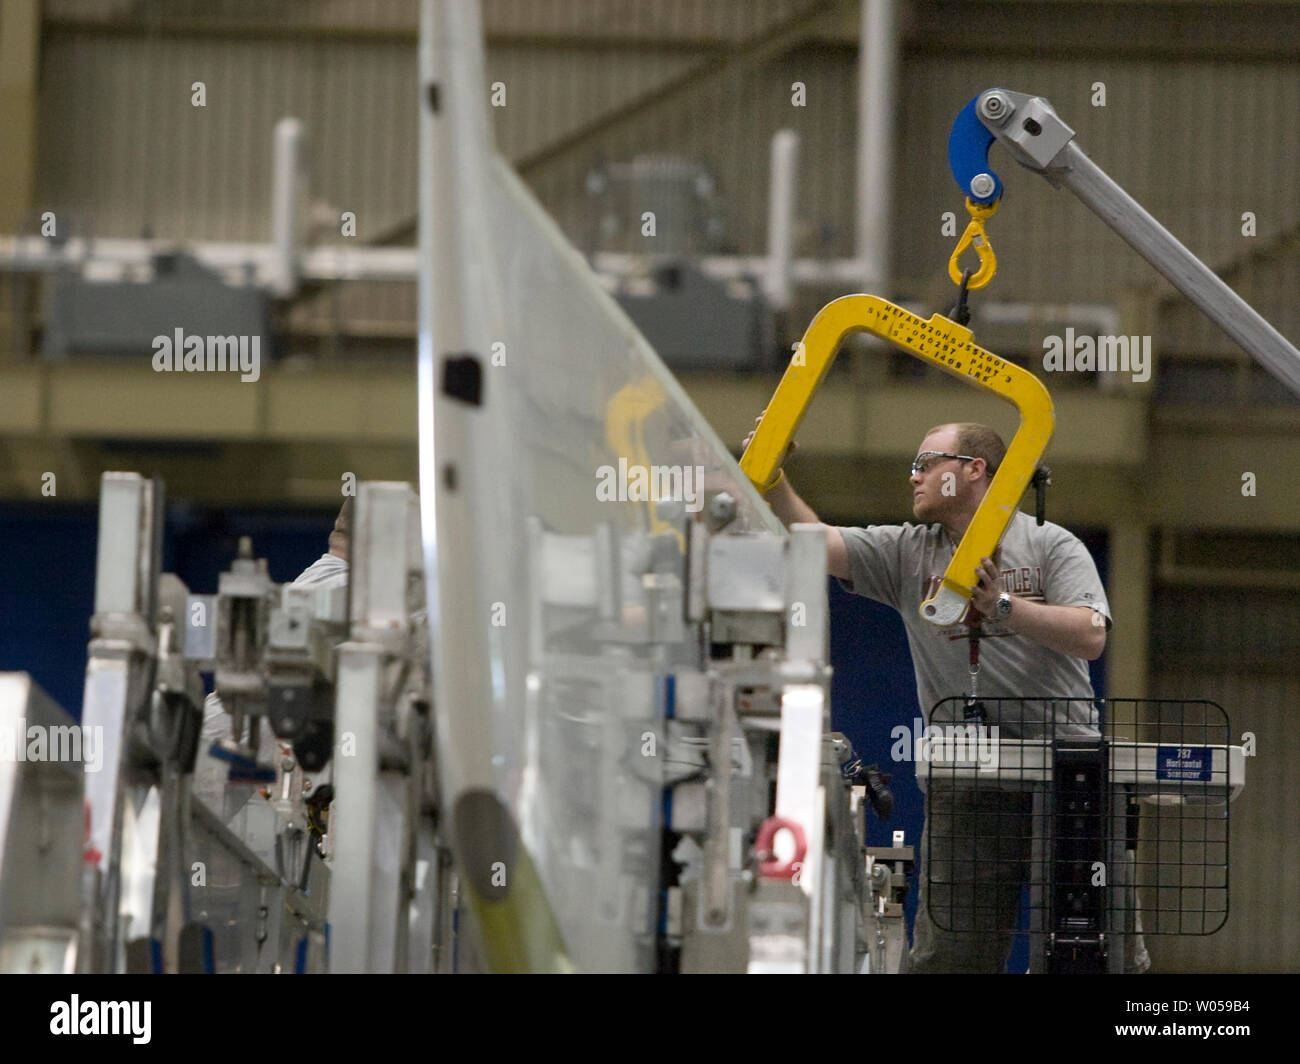 A Boeing employee prepares to lift a horizonal stabilizer that will be assembled on a 787 Dreamliner at the company's plant during Boeing's Media Day at the Commercial Airlines Factory on May 19, 2008 in Everett, Washington. The Dreamliner, first new Boeing jet in 14 years, is being built in the 42-acre factory building is for its first flight sometime late in 2008. (UPI Photo/Jim Bryant) - Stock Image